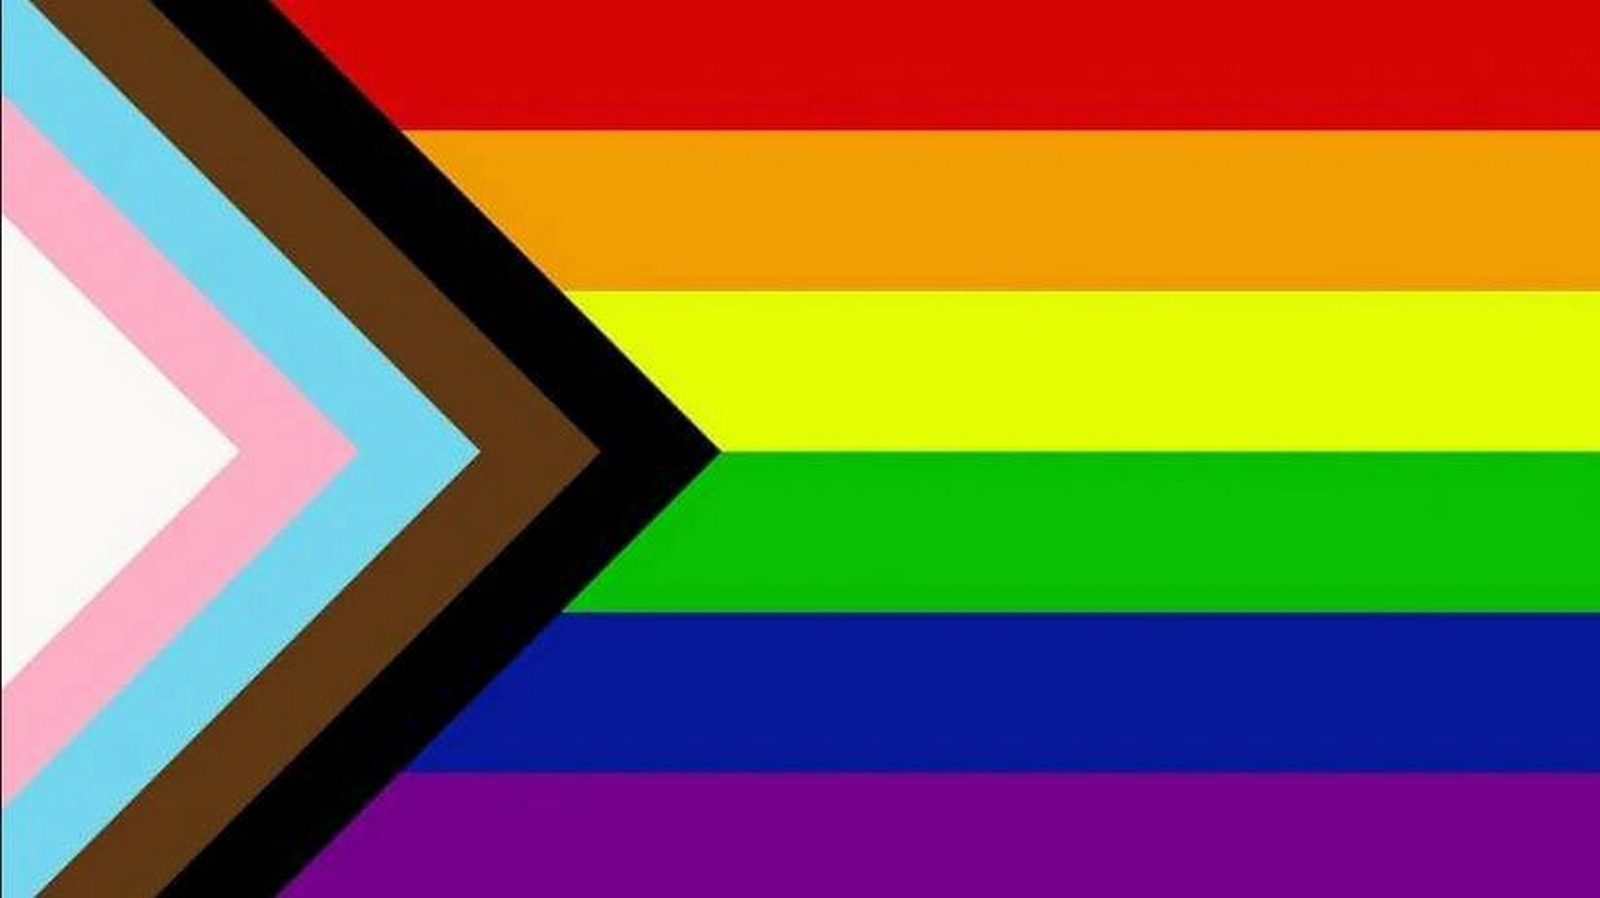 9 Designs Advocating For LGBT Equality - Sheet8